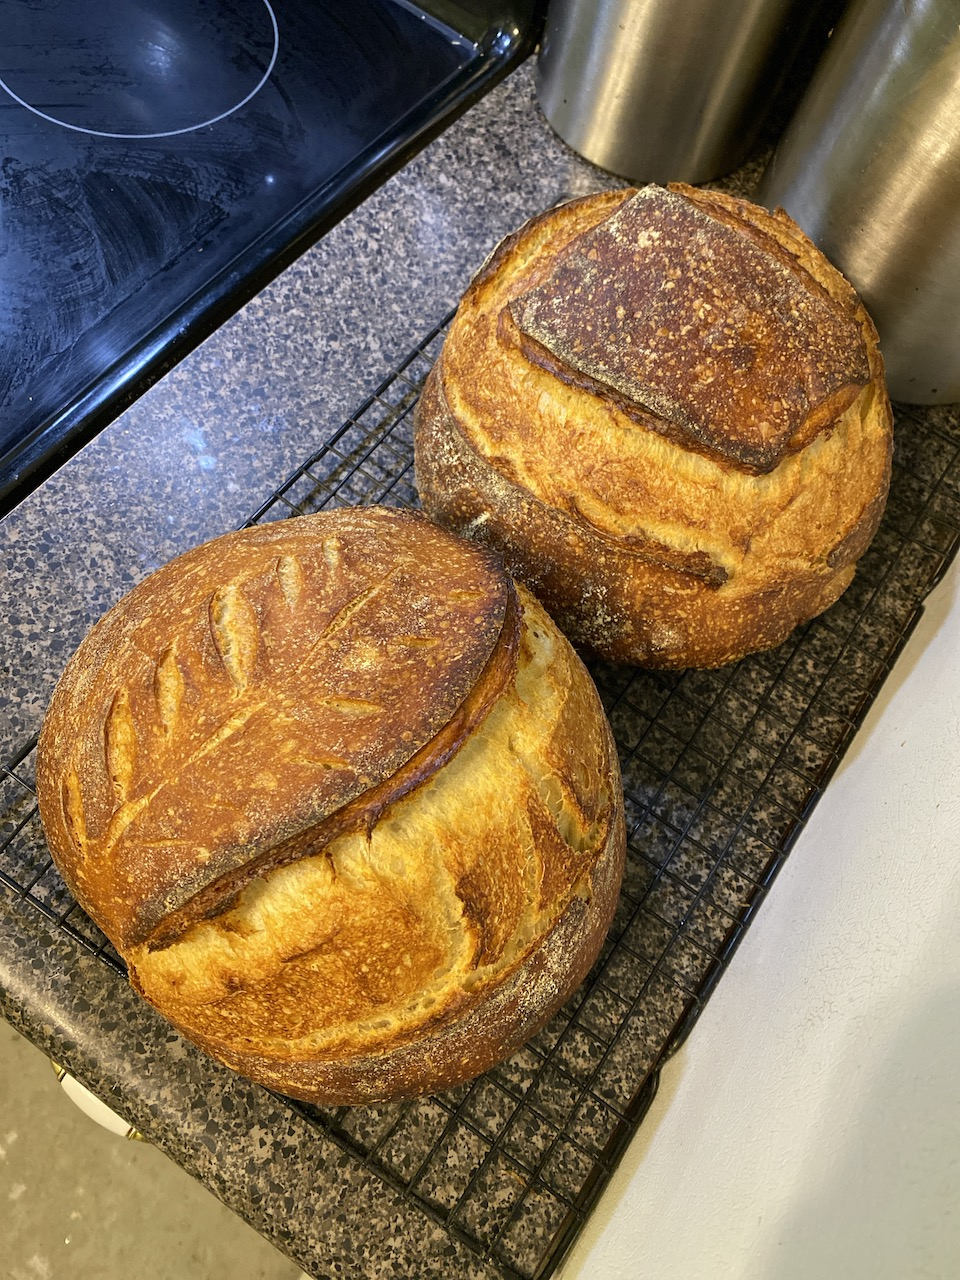 Two gorgeous loaves of pain au levain on a cooling rack.